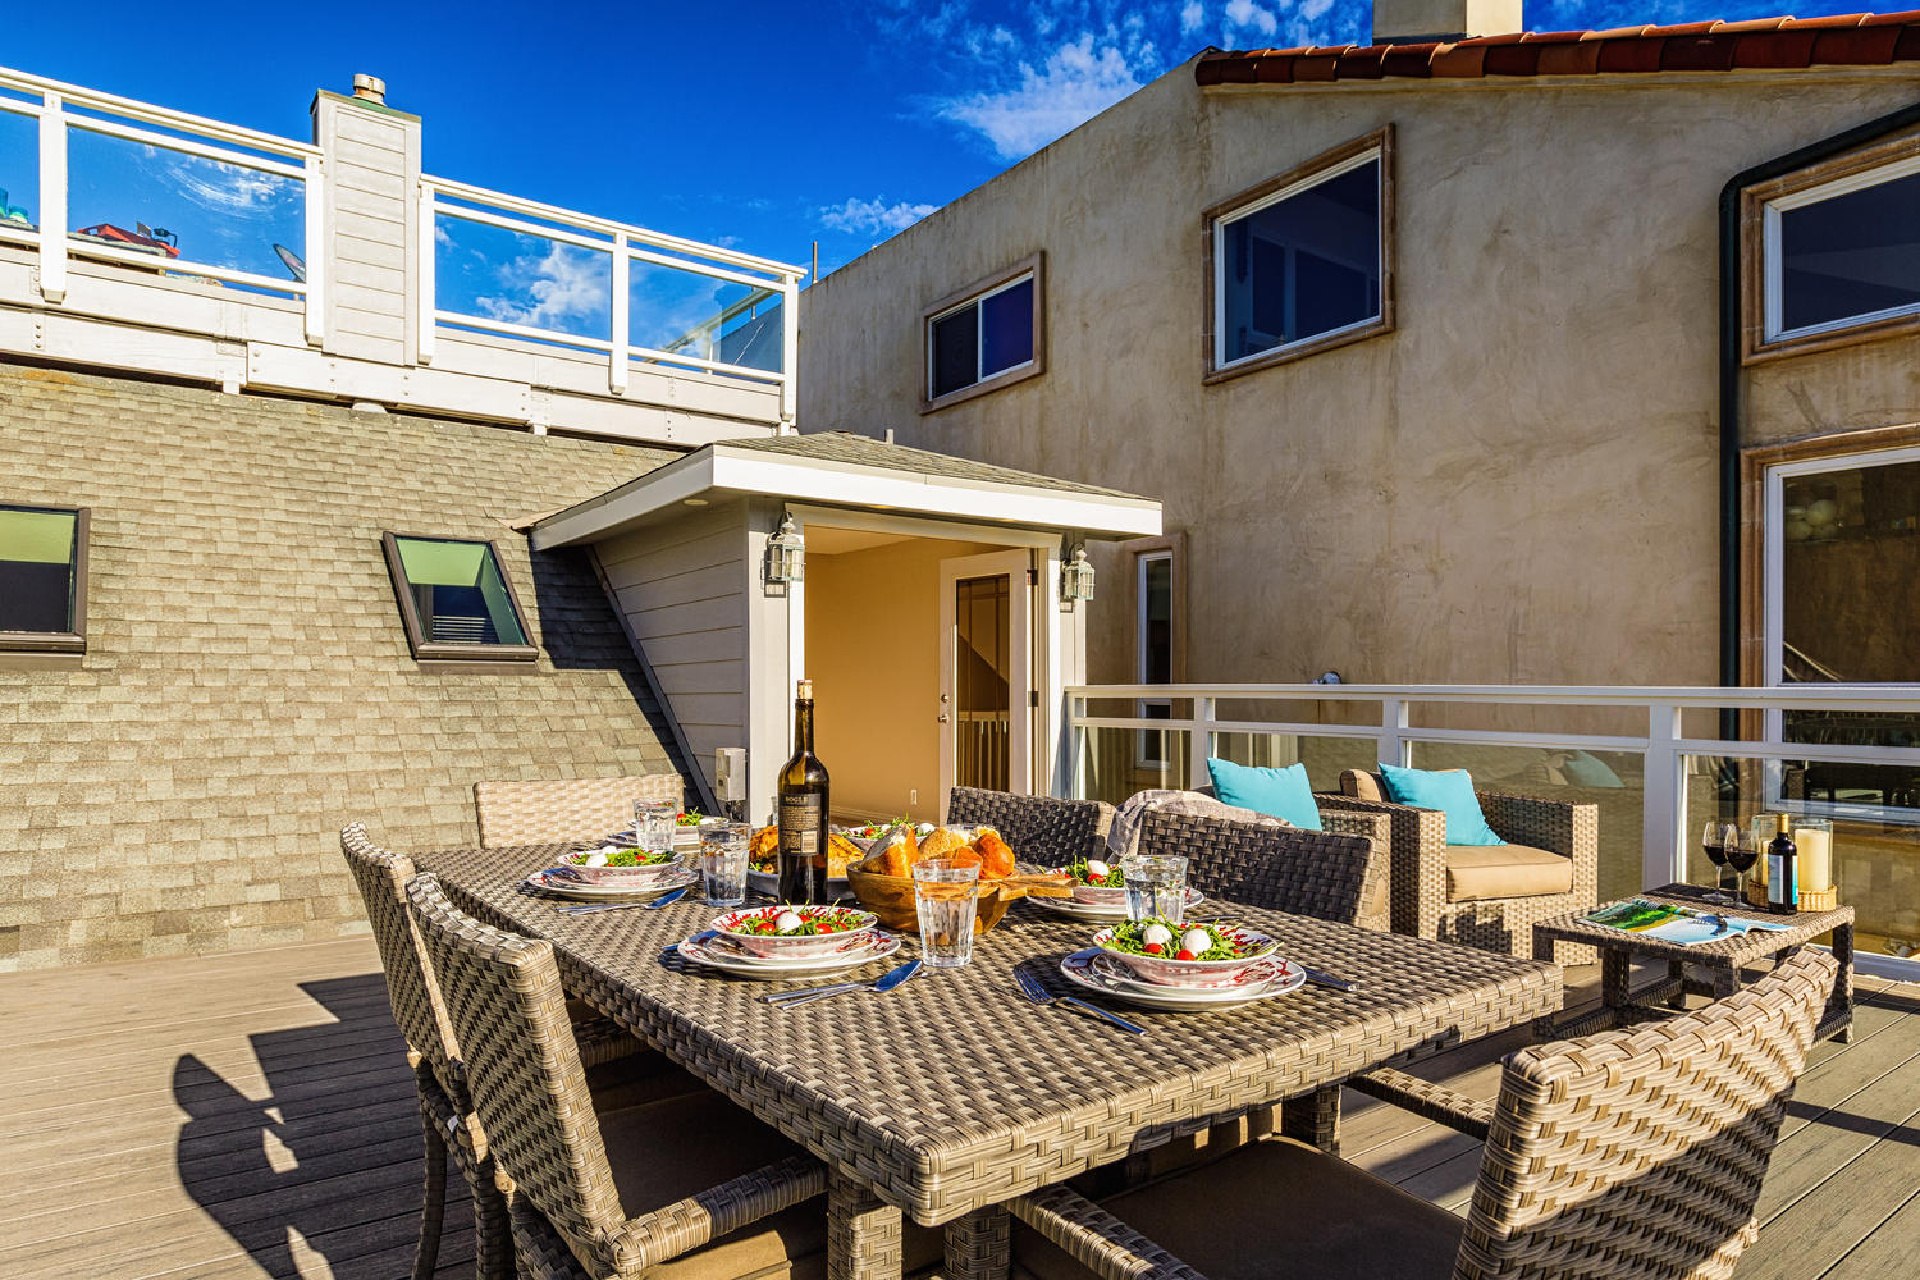 https://www.addressrealestate.com/media/images/blogs/38/2/b_18-1408-ocean-dr-oxnard-ca-93035-mls-size-012-7-balcony-1500x1000-72dpi.jpg